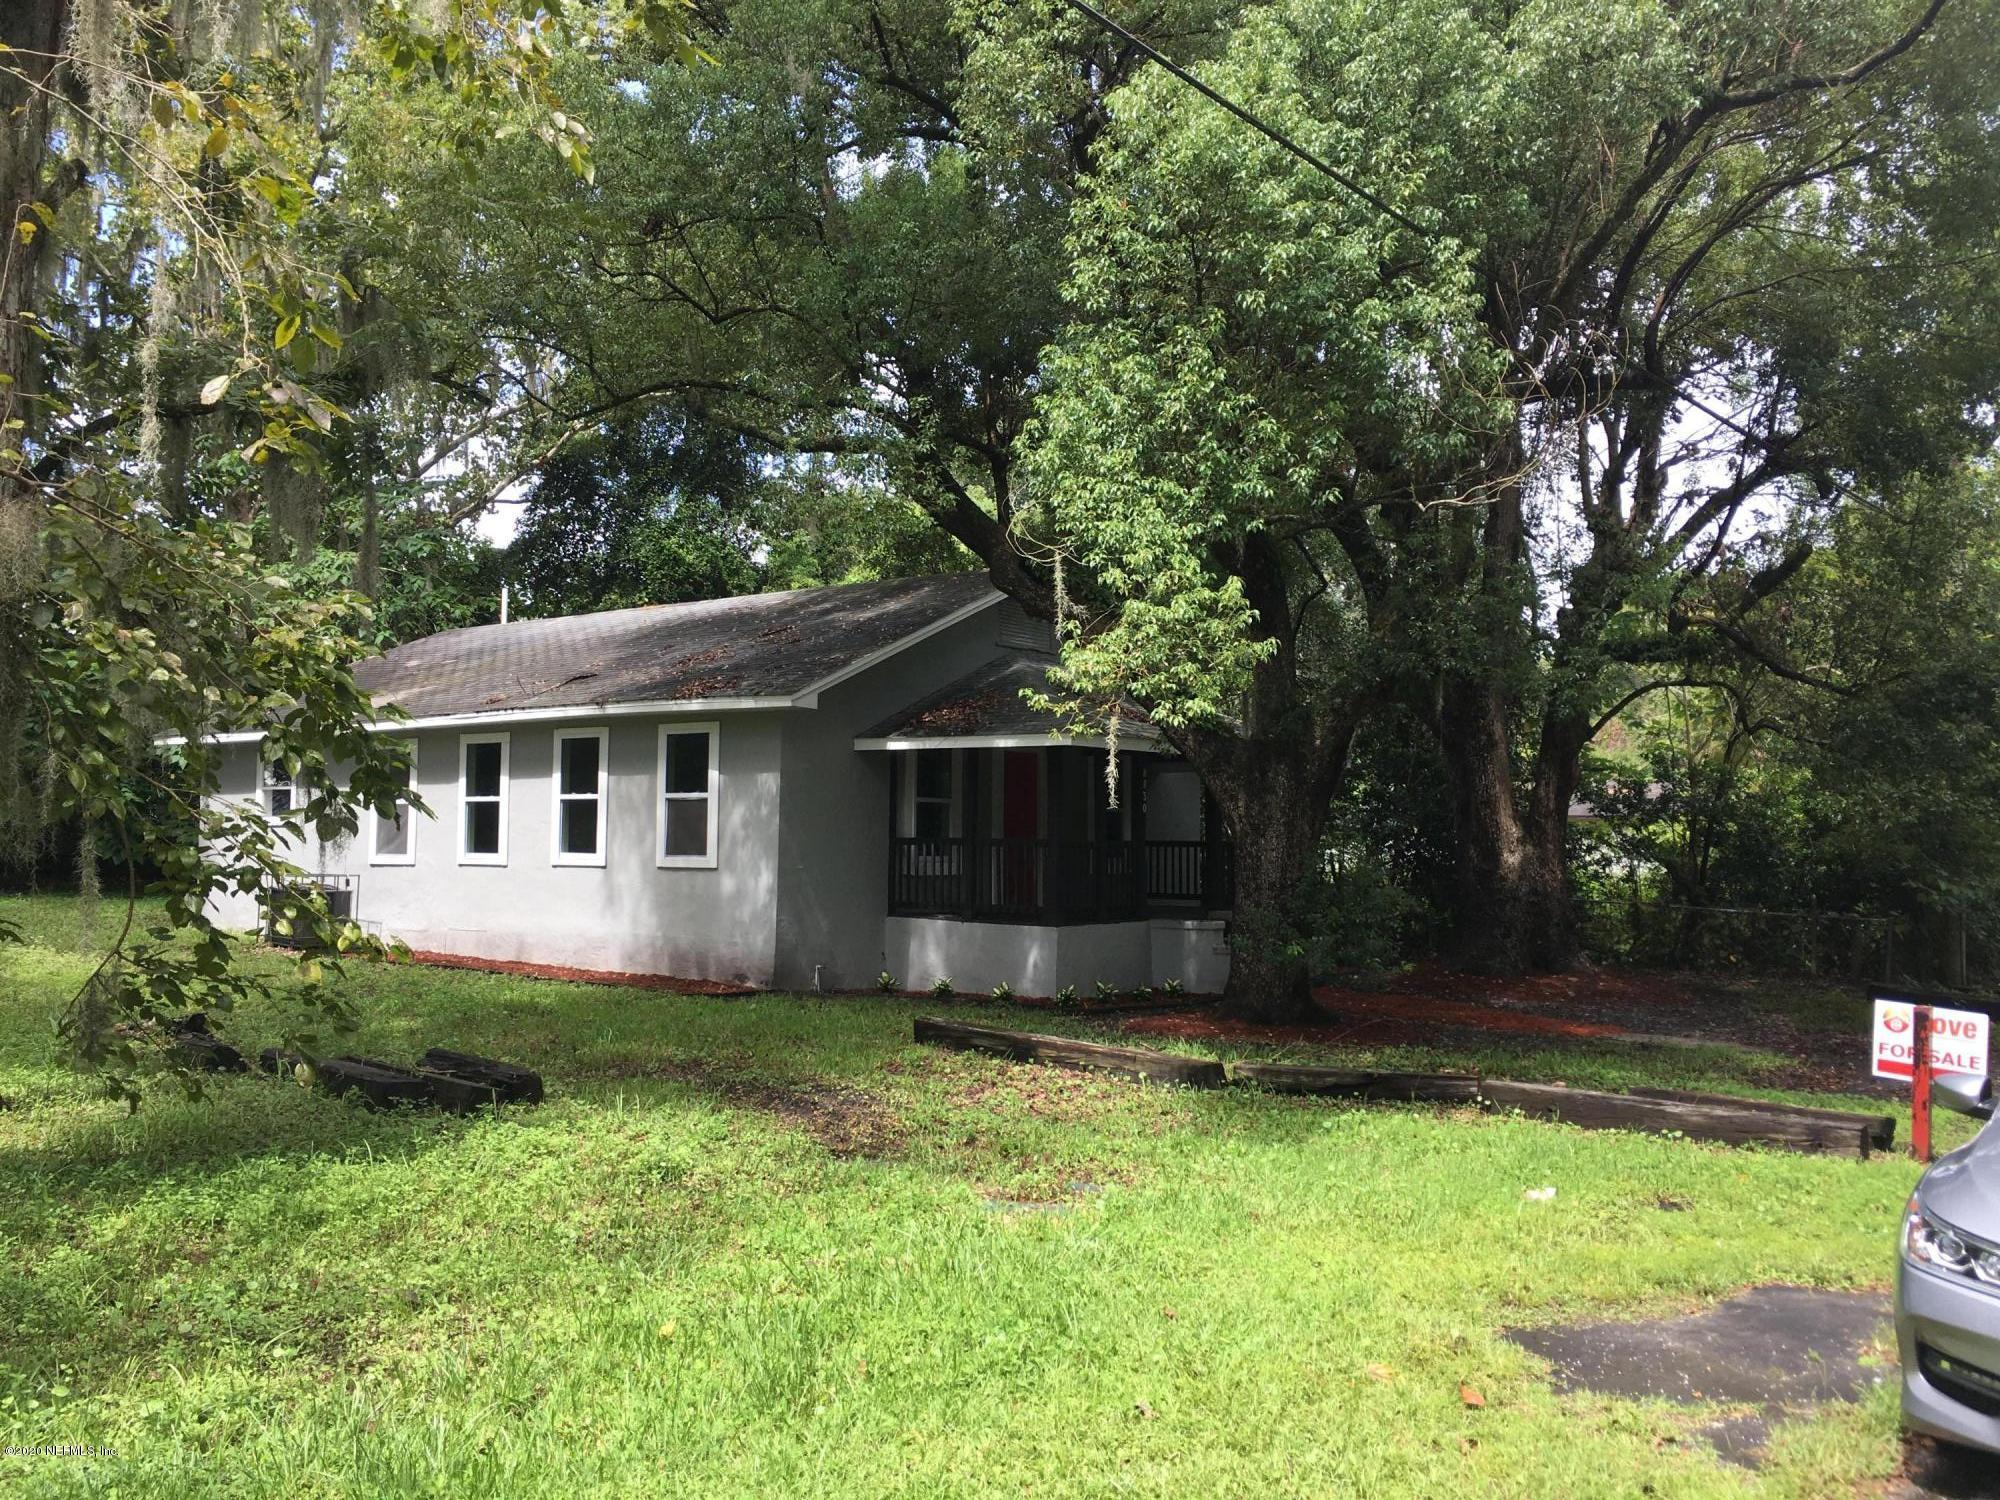 8830 3RD, JACKSONVILLE, FLORIDA 32208, 3 Bedrooms Bedrooms, ,2 BathroomsBathrooms,Residential,For sale,3RD,1056557